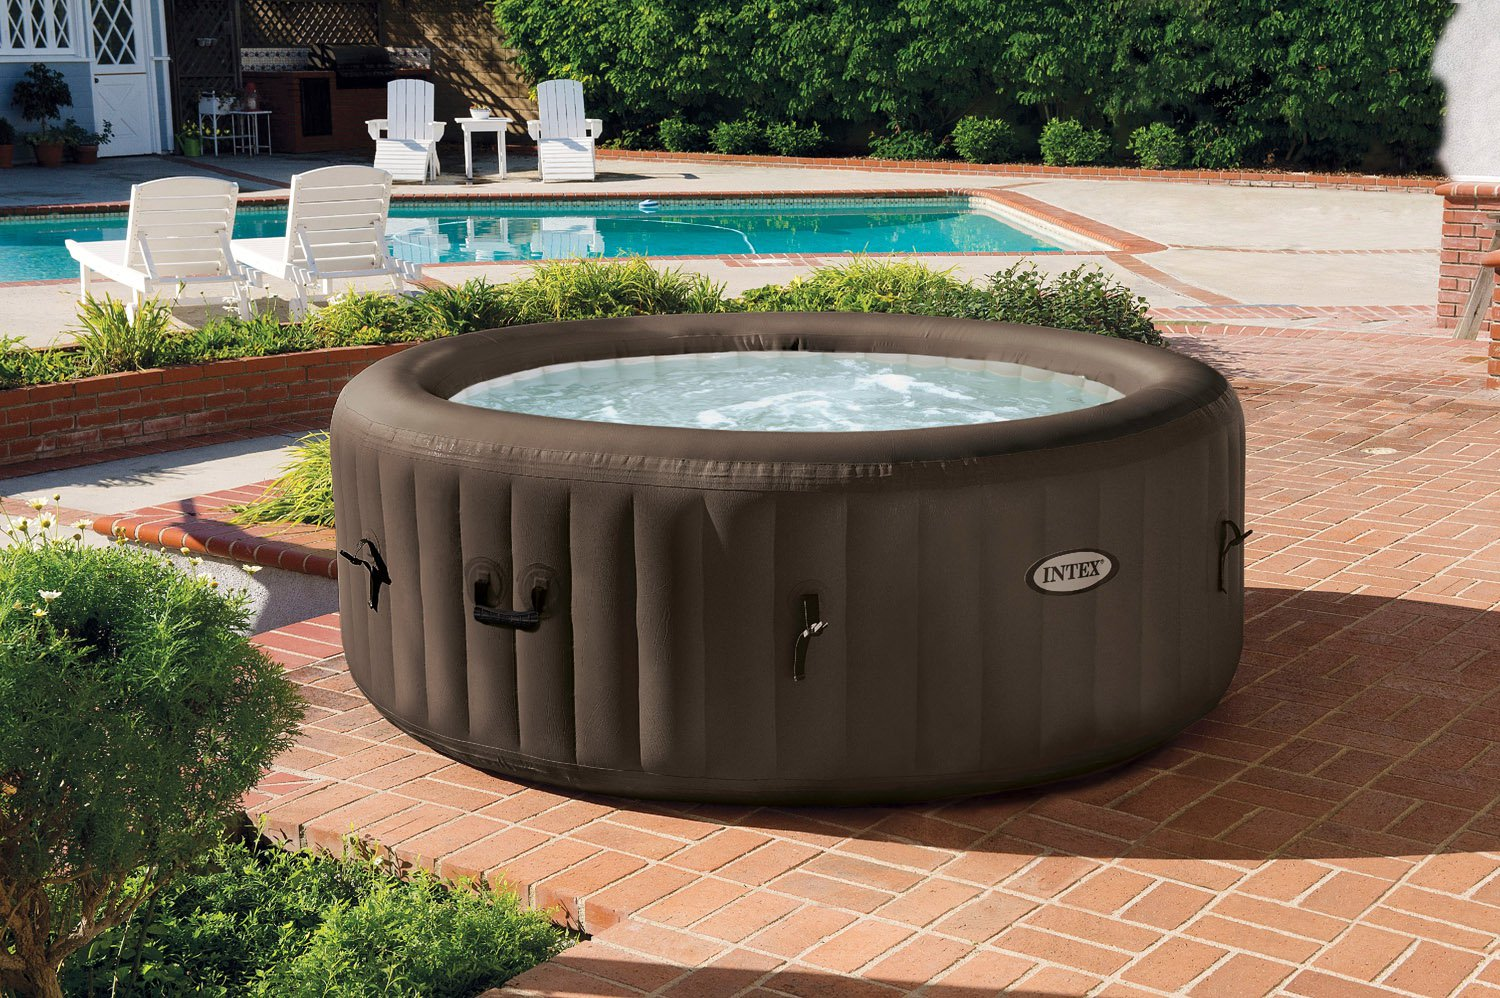 Intex Pure Spa 4 Person Inflatable Portable Heated Jet Massage Hot Tub |  28423E